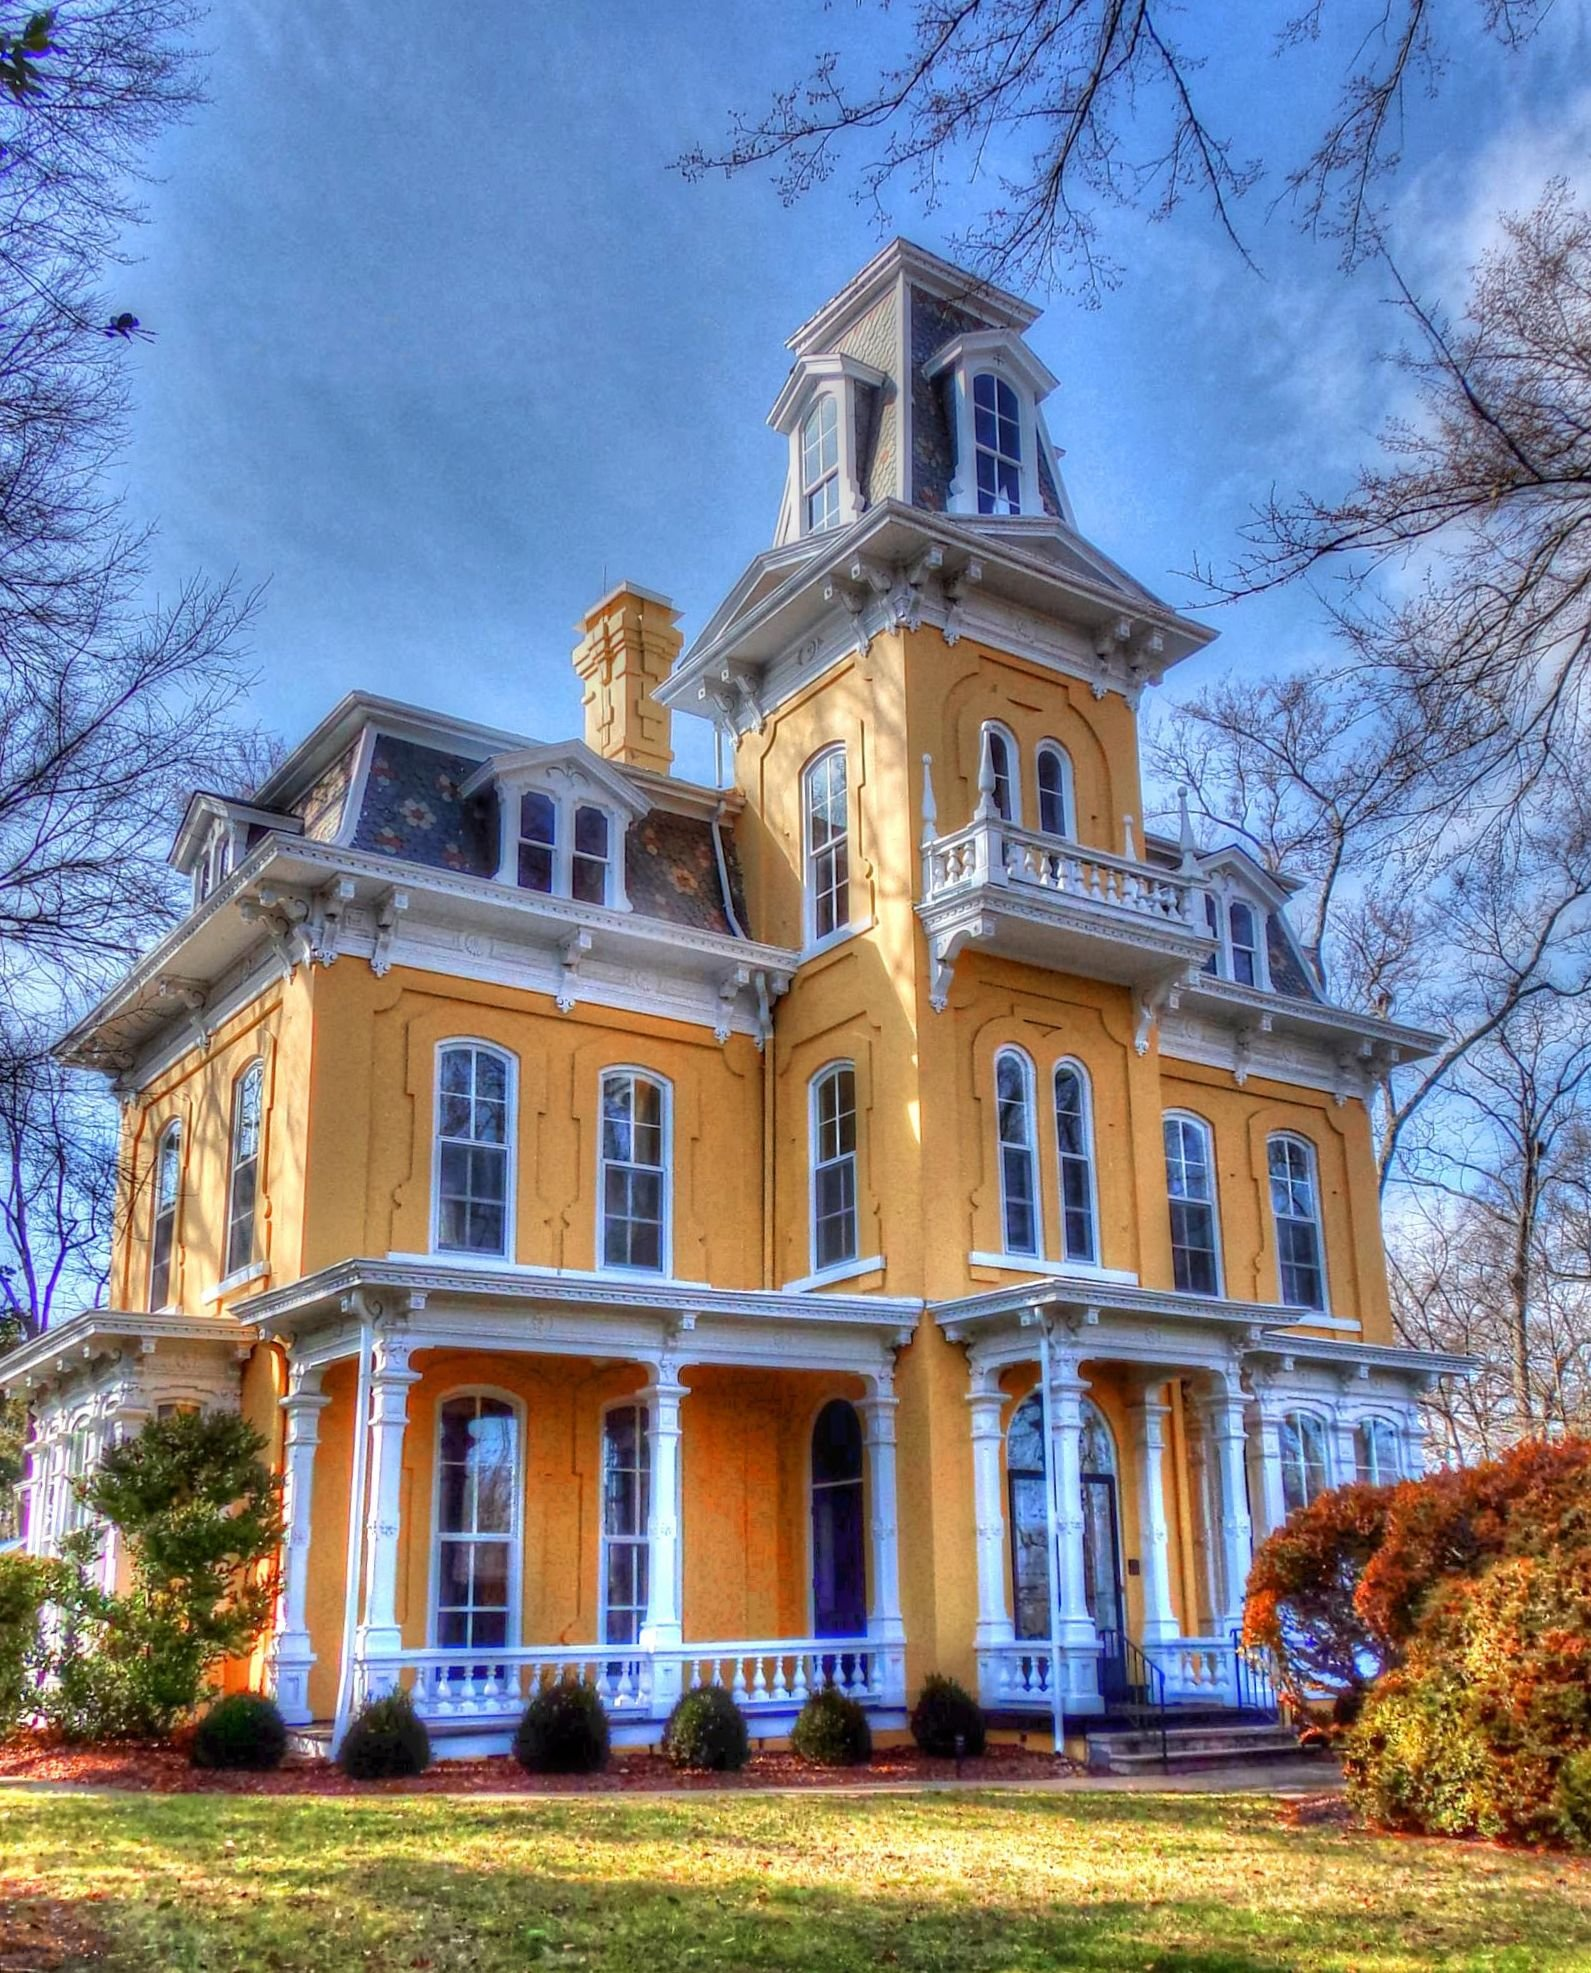 https://blueridgeimpressions.wordpress.com/2015/03/07/more-shelby-n-c-mansions/